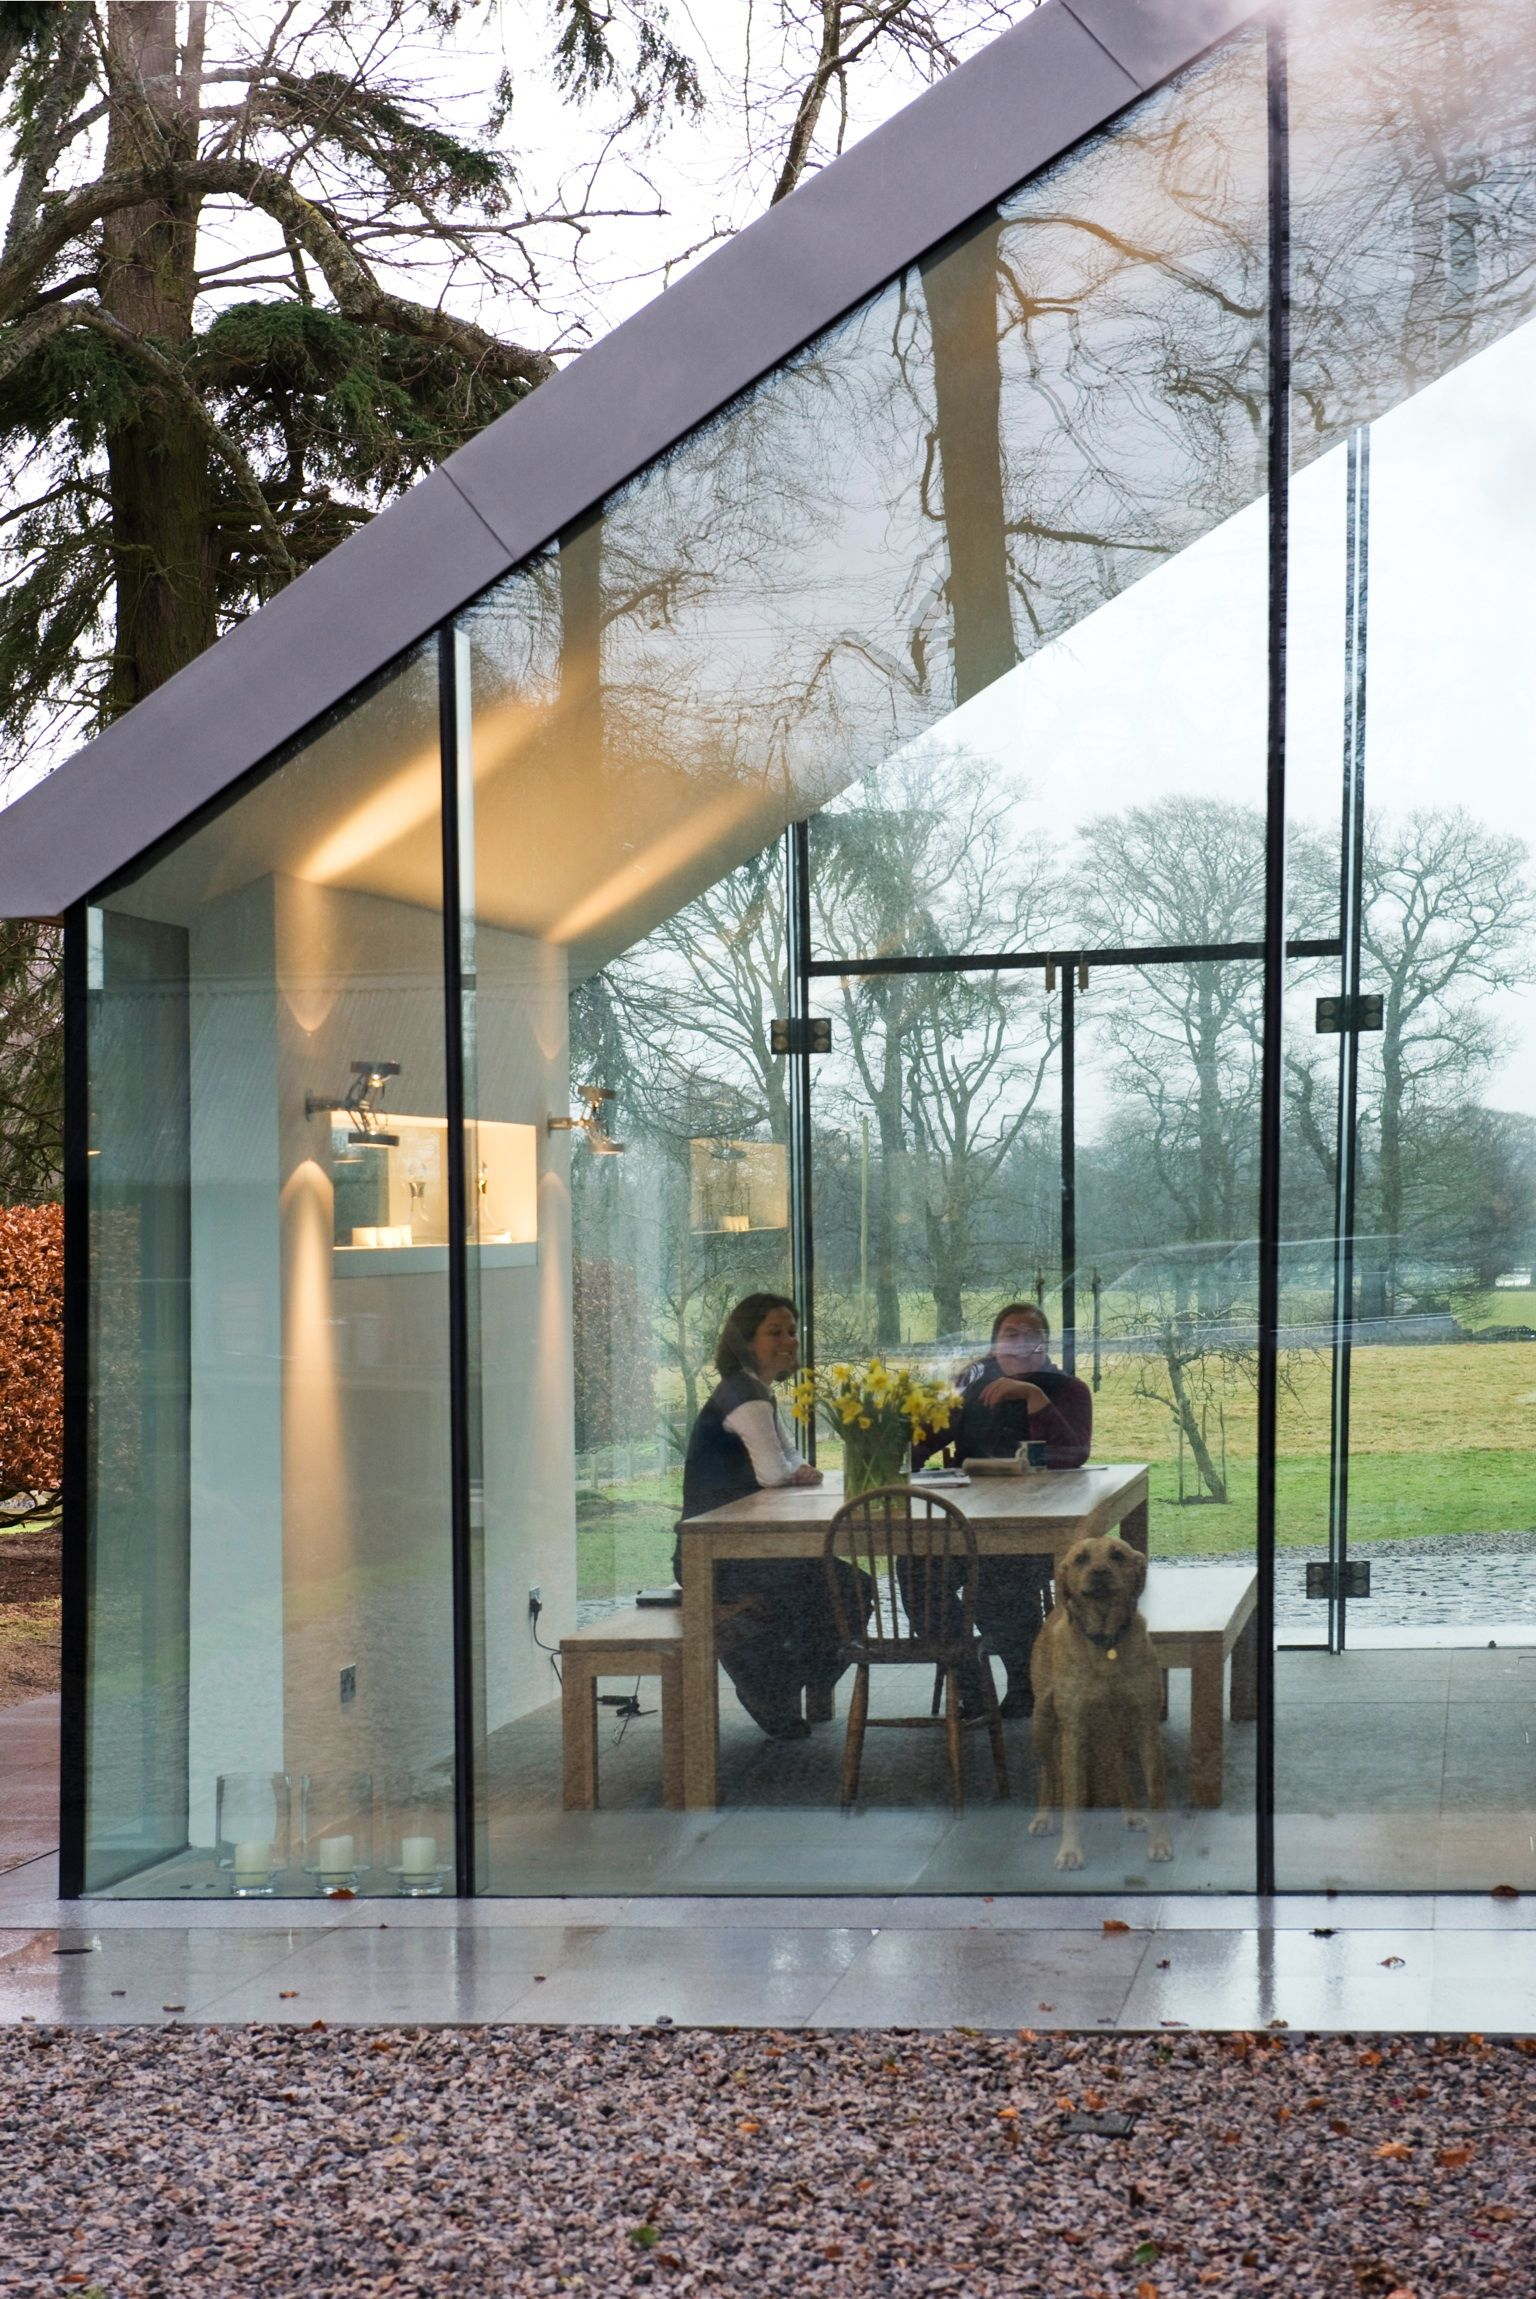 Prospect house structural glass extension structural glazing vmzinc roof frameless glass traditional